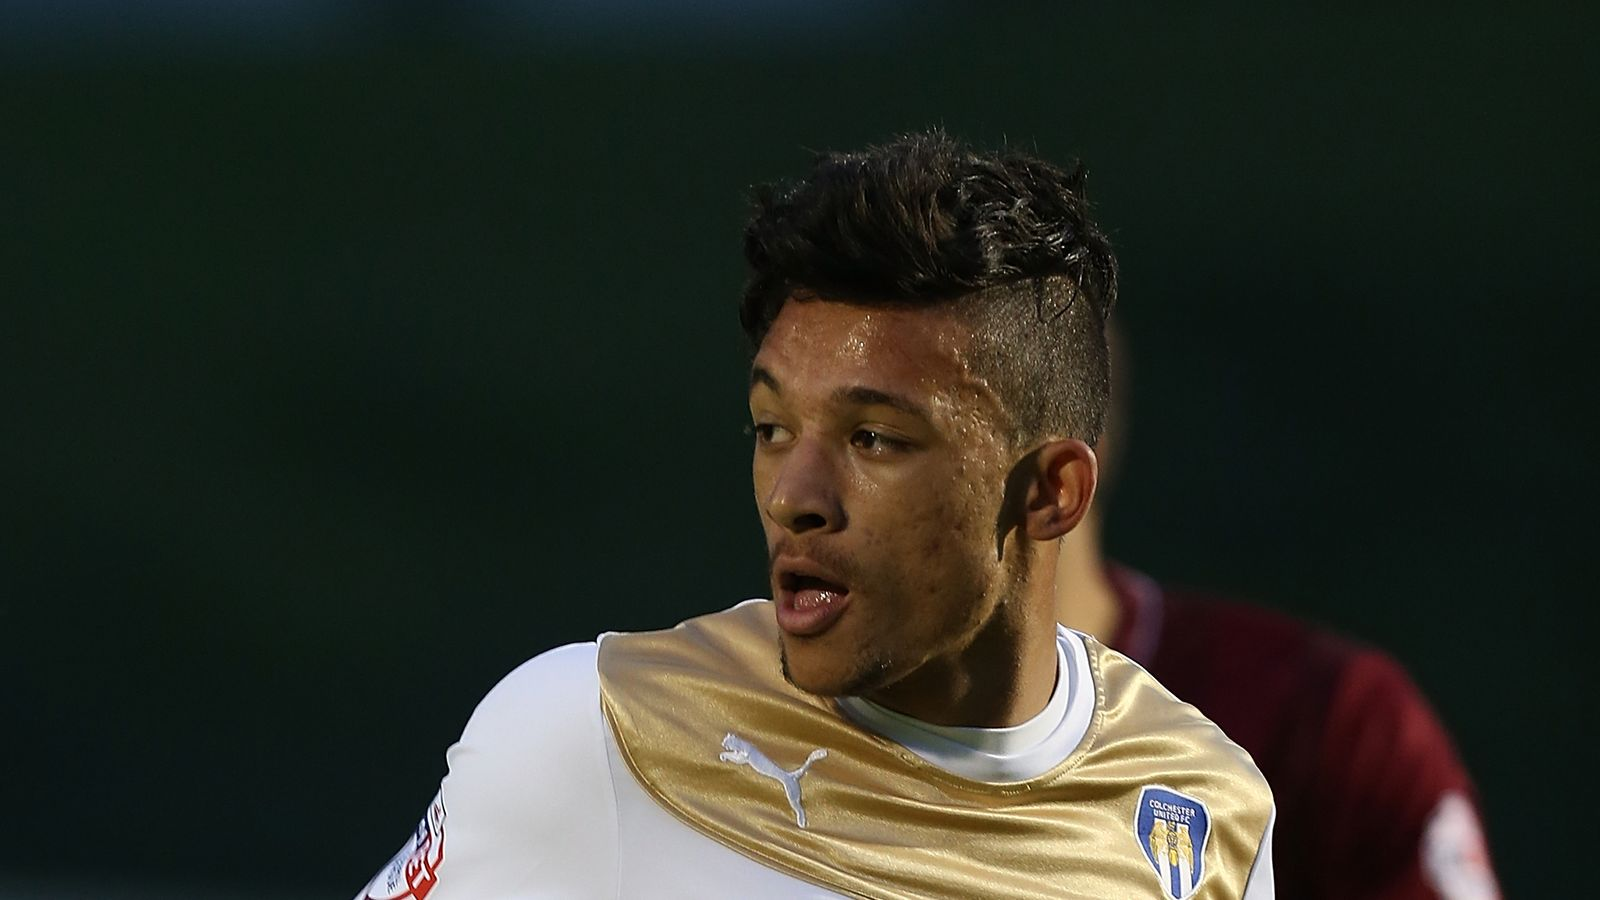 Macauley Bonne commits to Colchester | Football News | Sky Sports